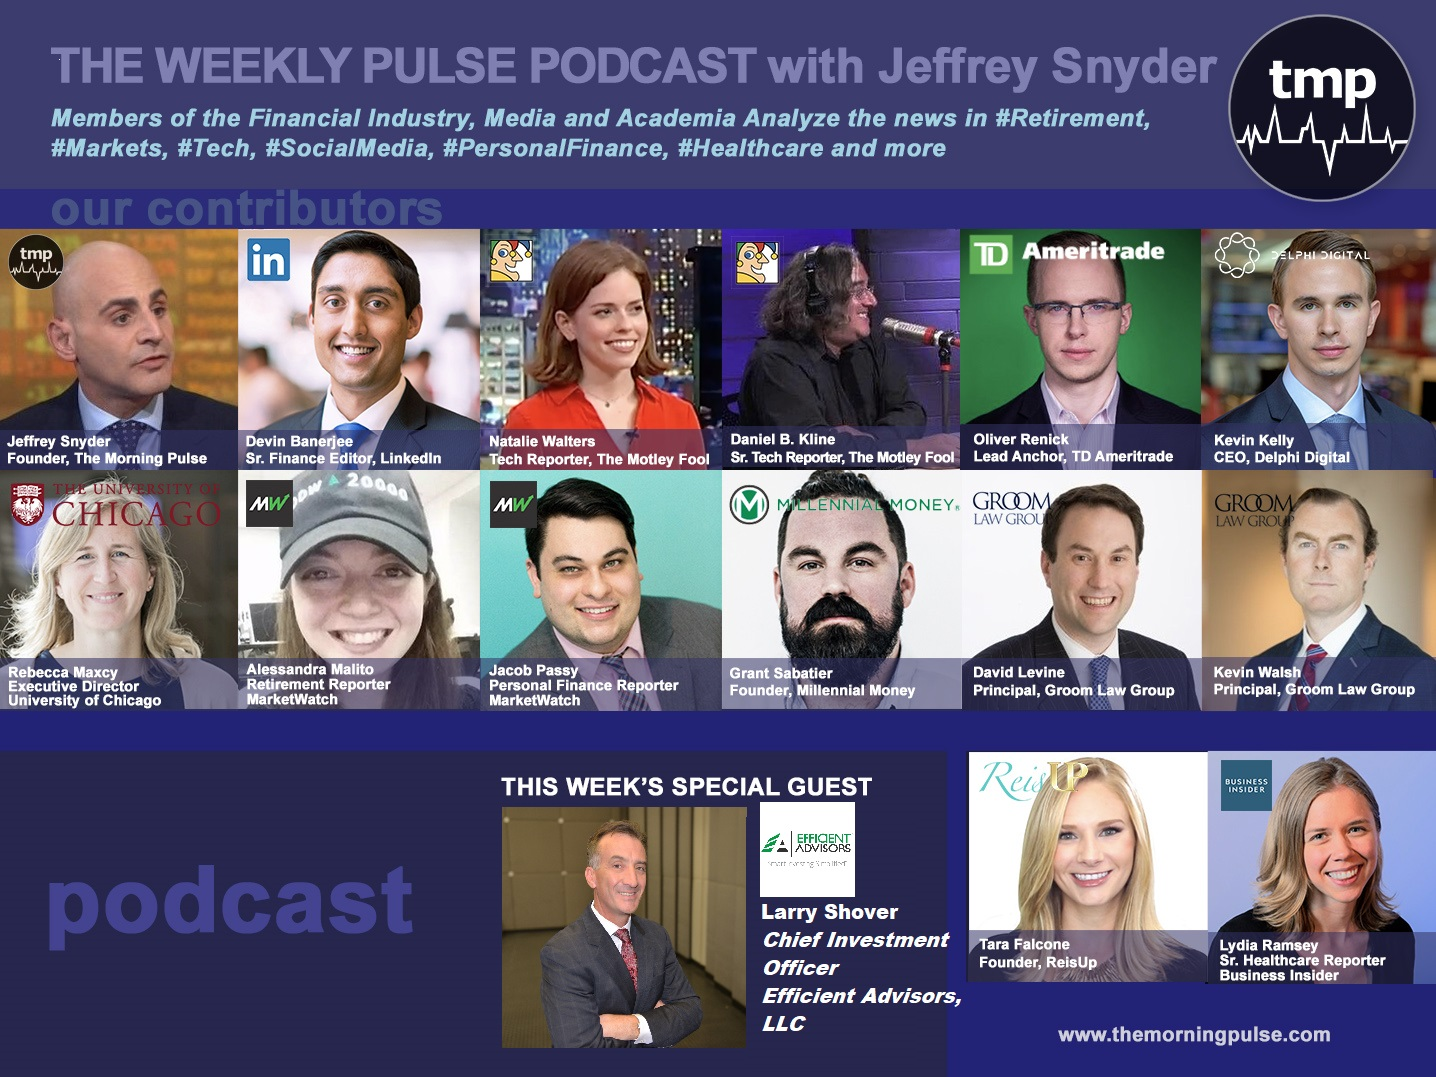 The Weekly Pulse Podcast for Sunday, May 19, 2019